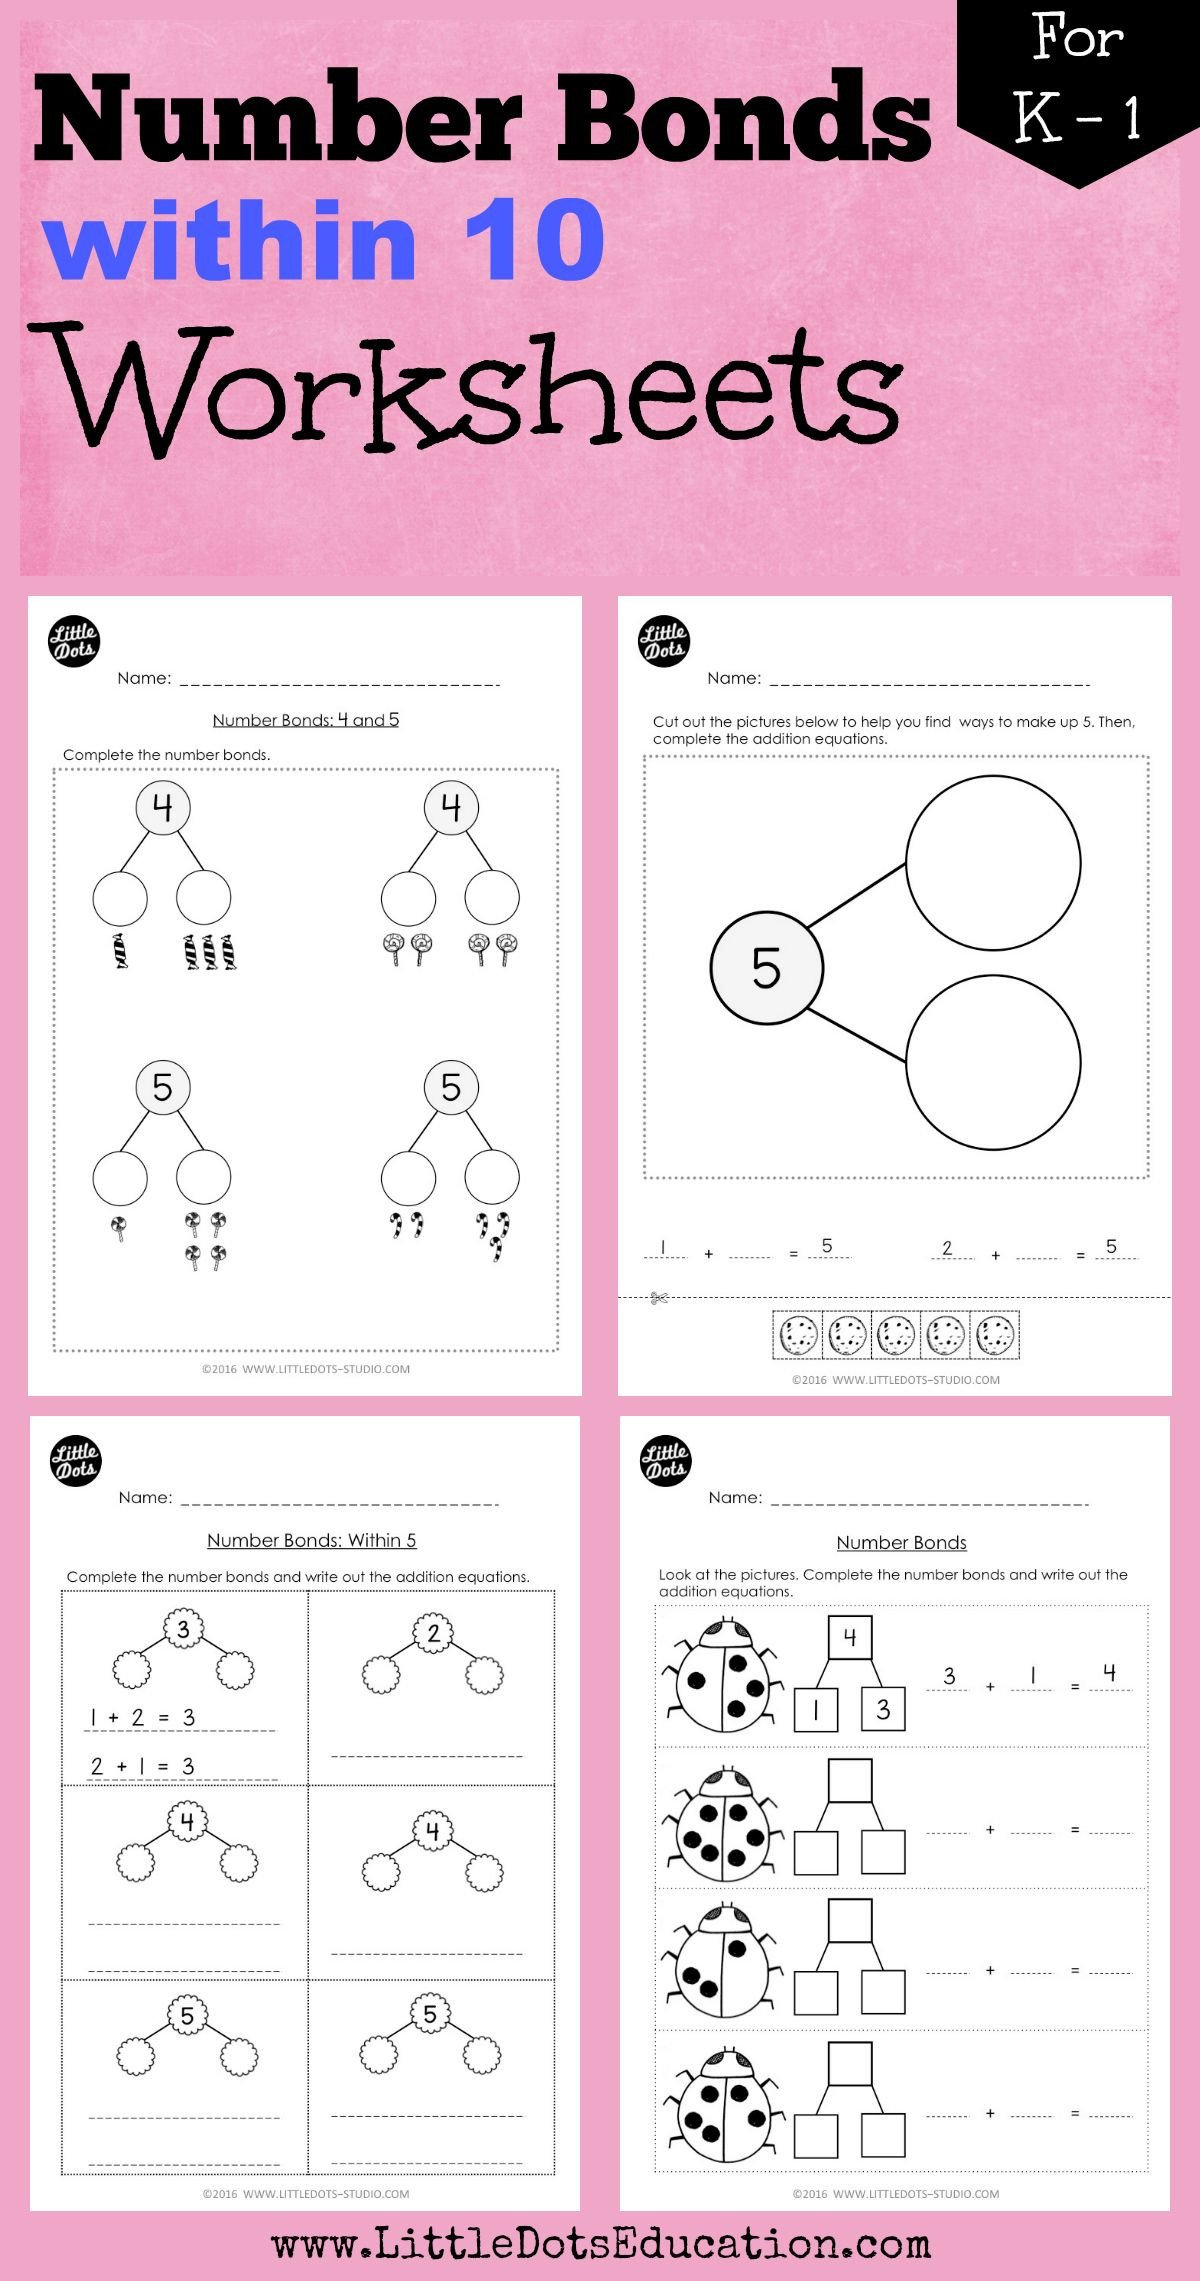 Number Bond Worksheets for Kindergarten Kindergarten Math Number Bond Worksheets and Activities